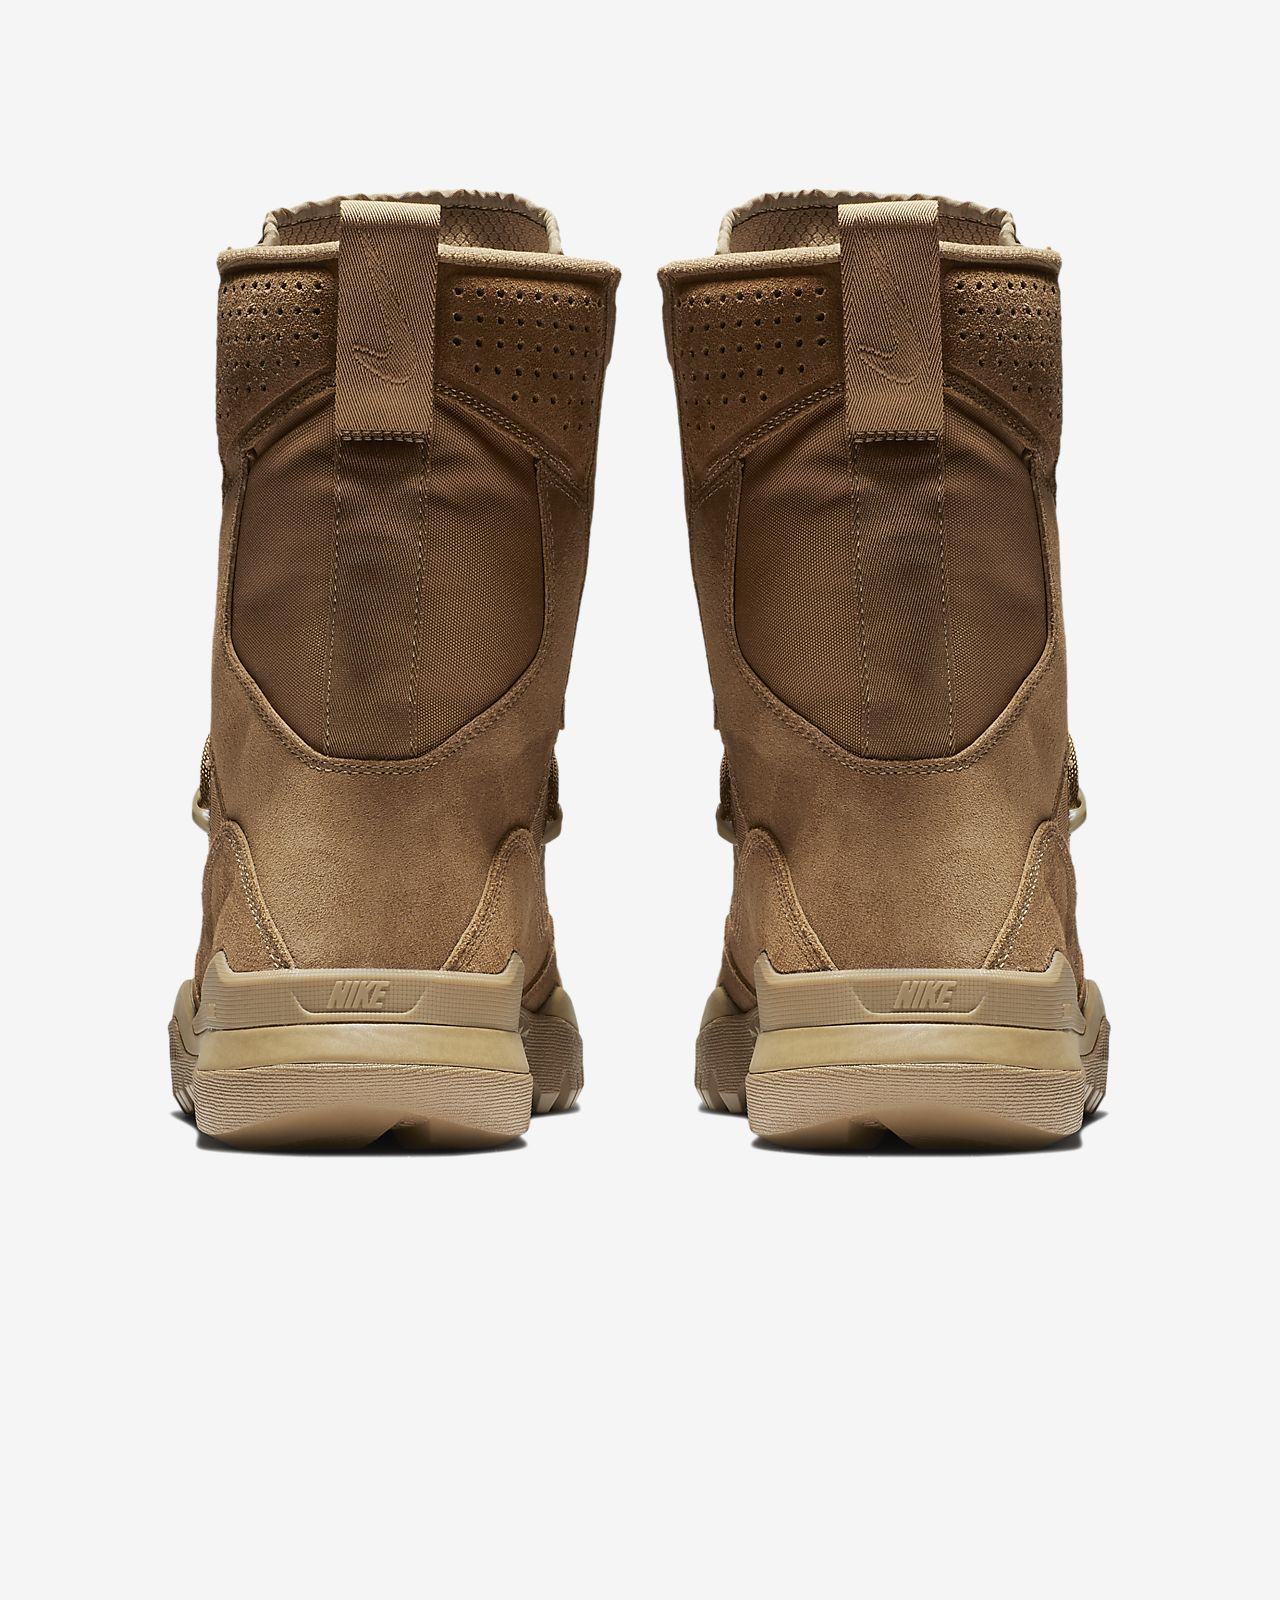 3d195d7be2 Nike SFB Field 2 8